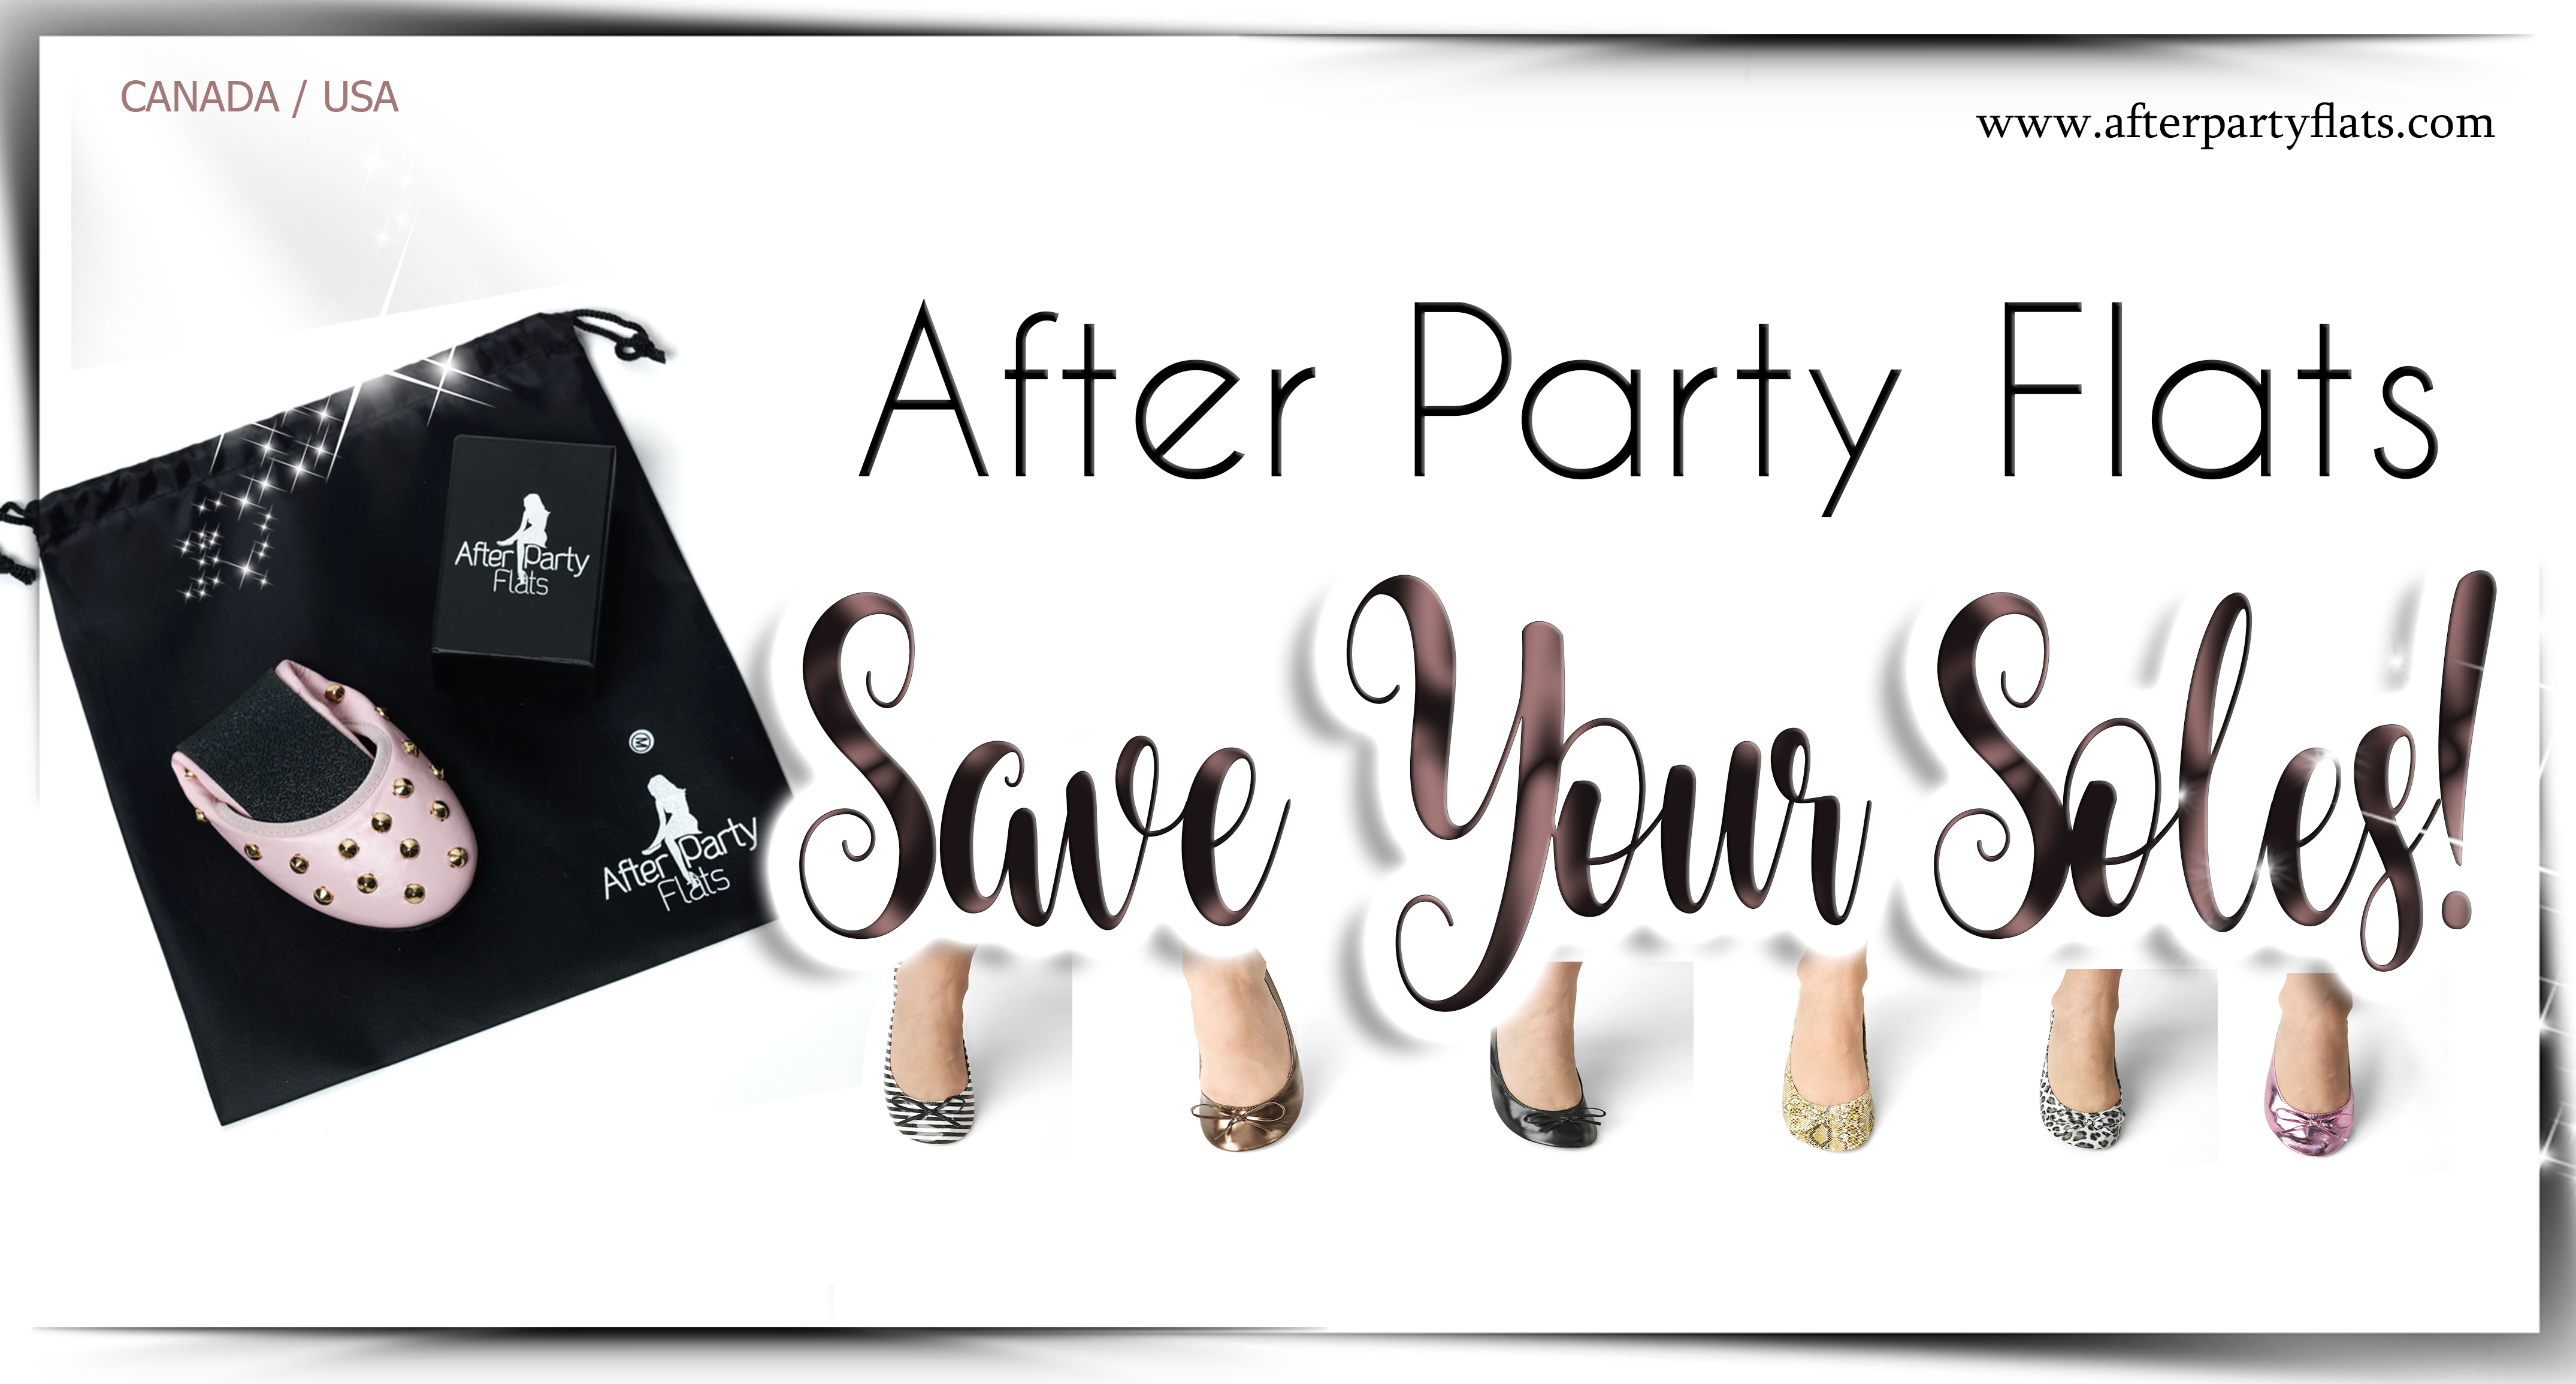 AFTER PARTY FLATS FB COVER PLAIN SHOES 7